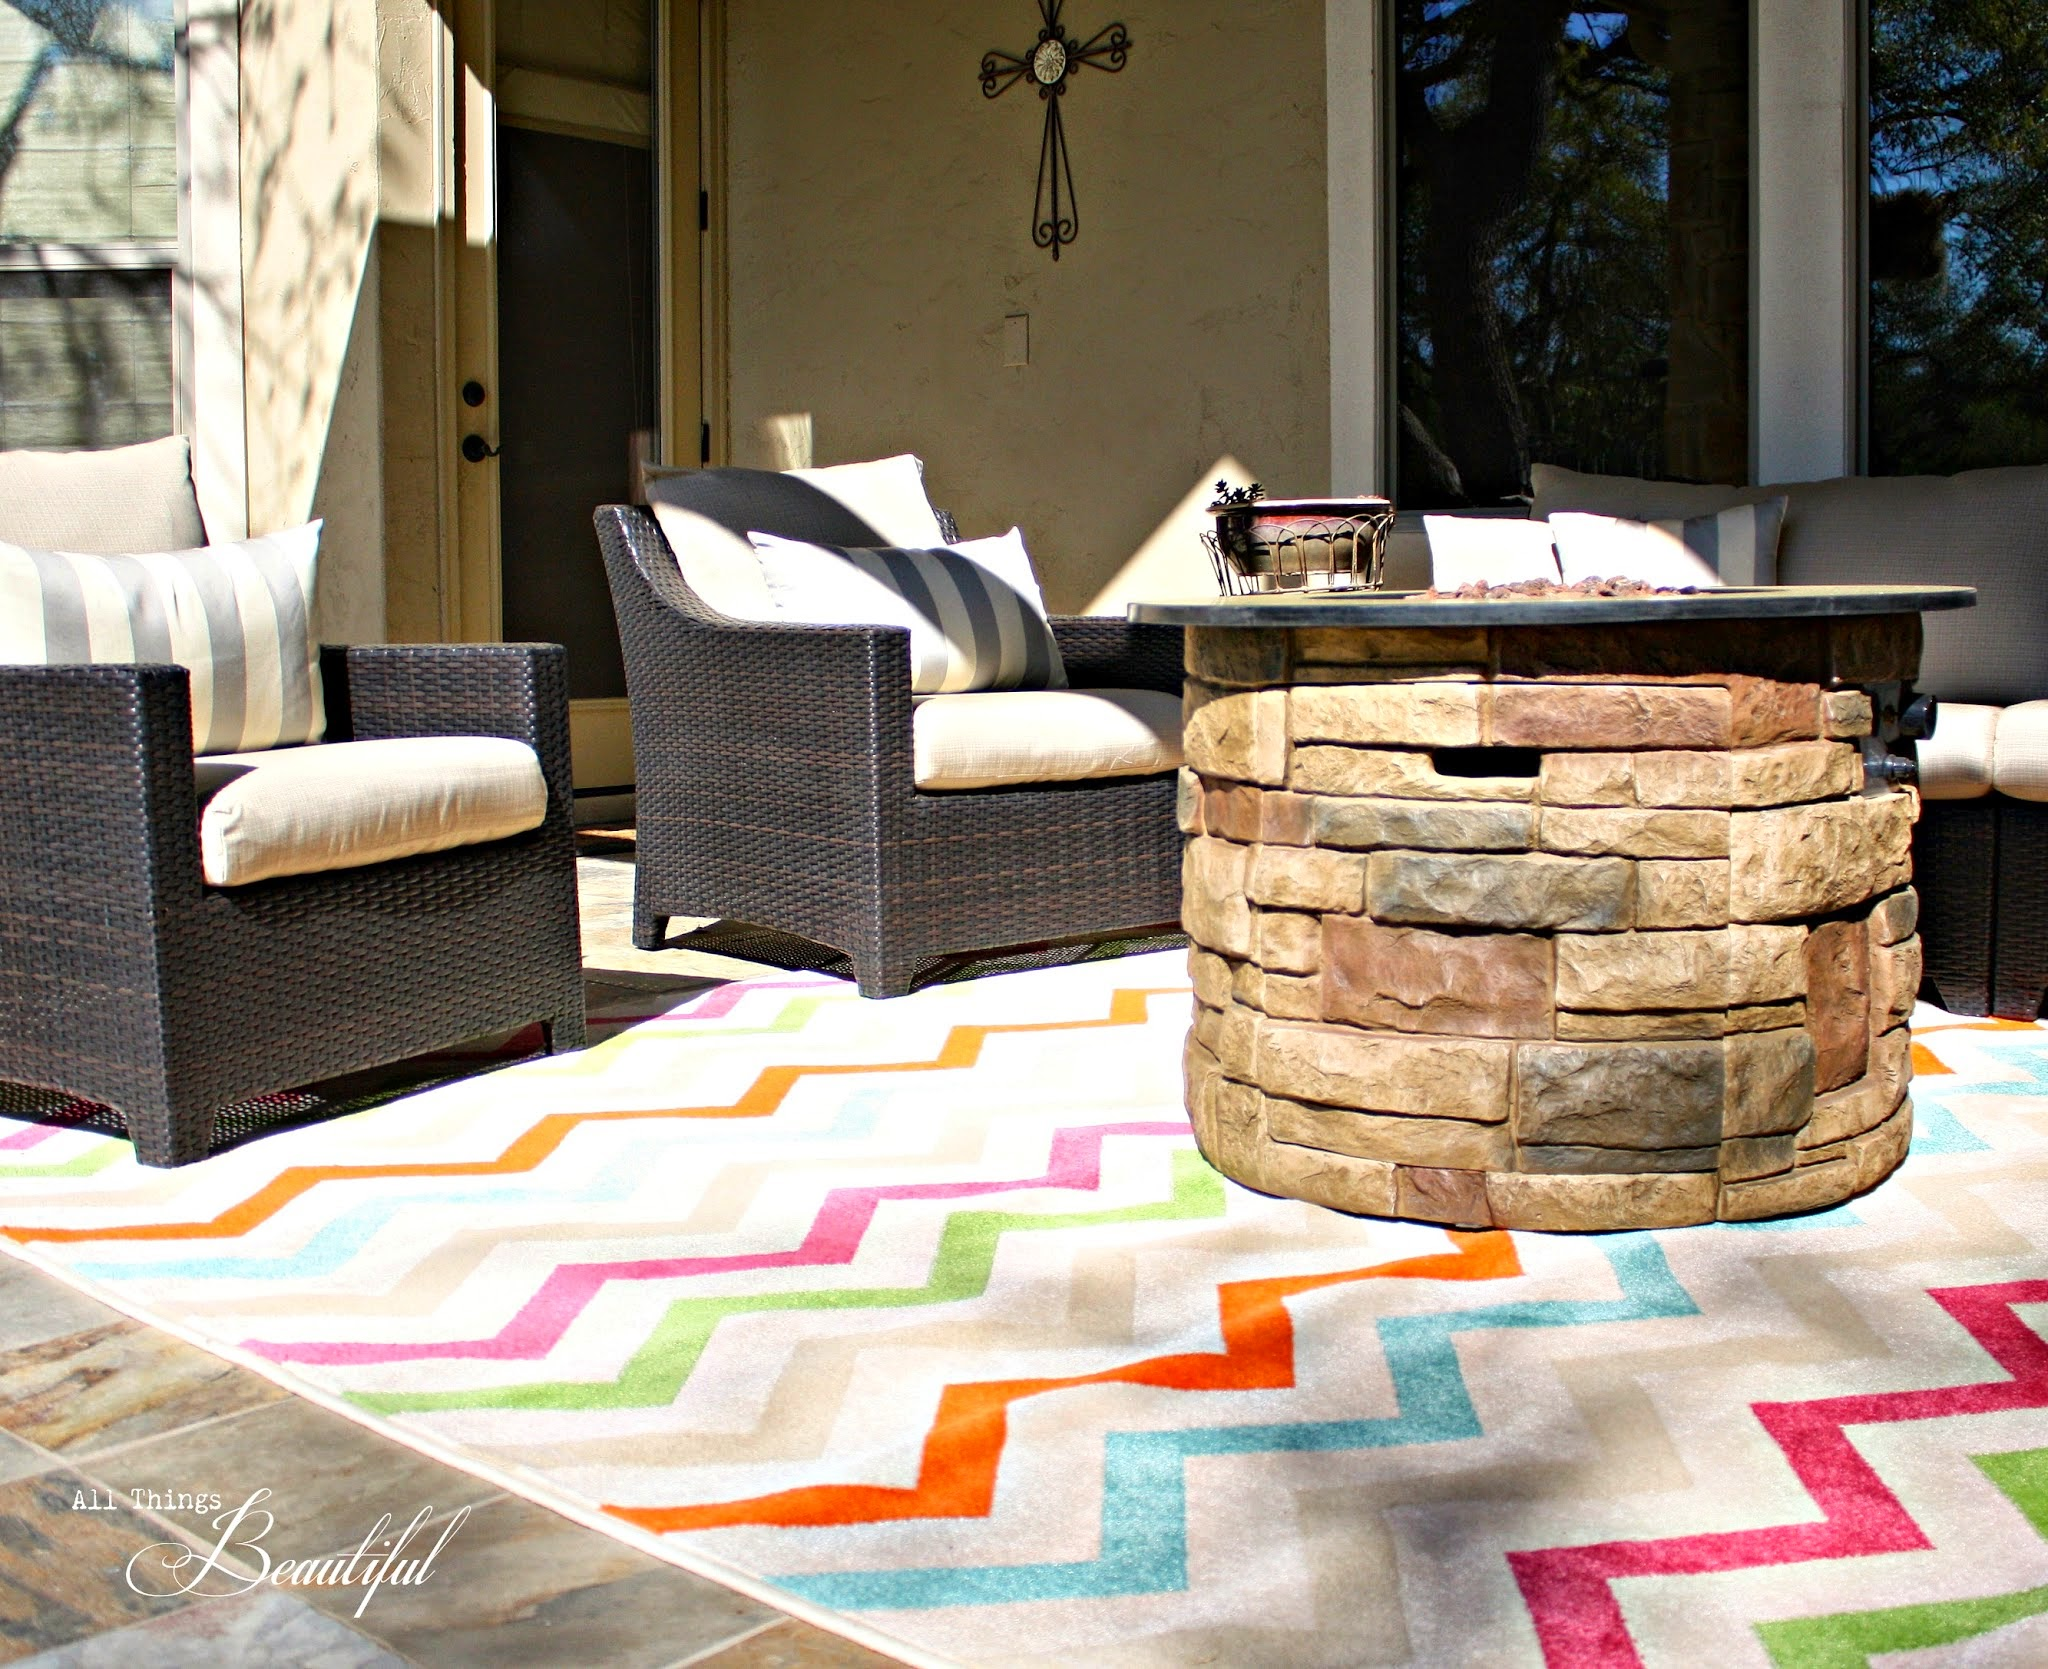 All Things Beautiful: Spring Patio Update {Mohawk Rug